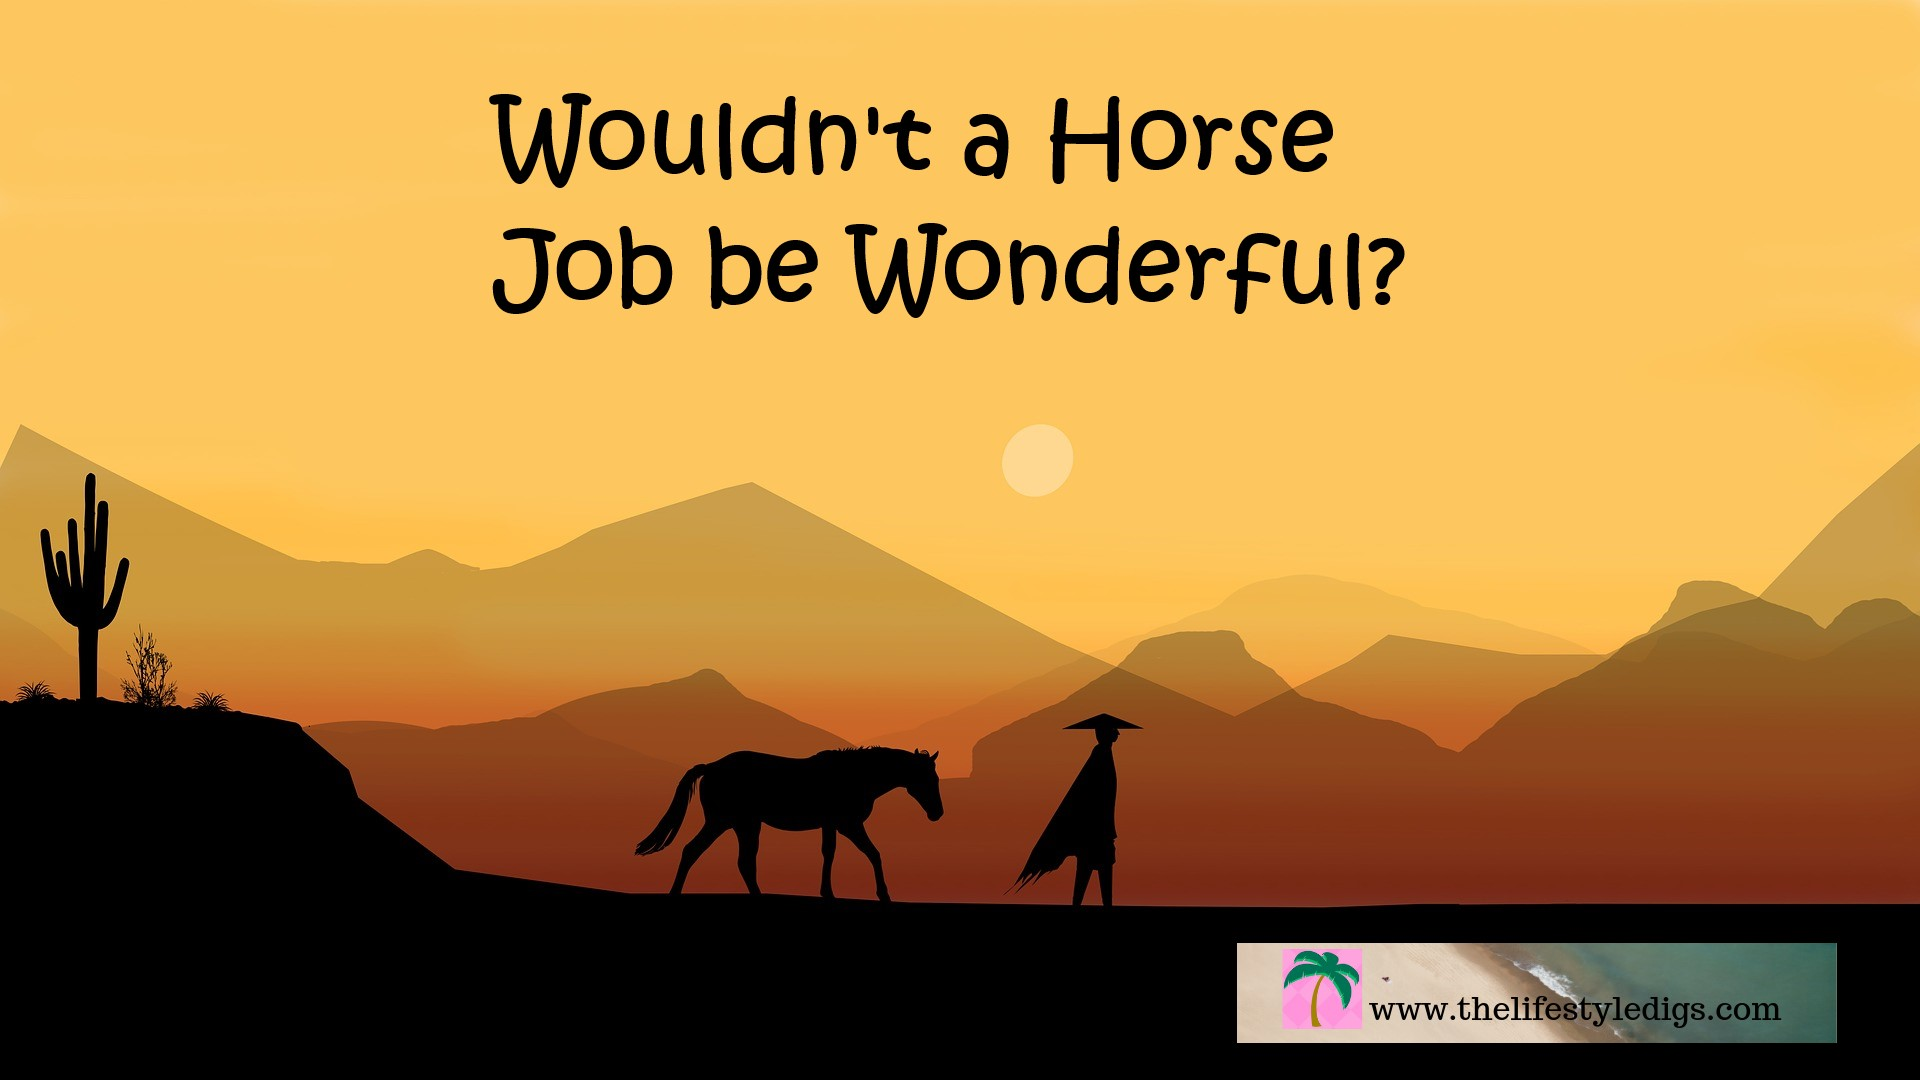 Wouldn't a Horse Job be Wonderful?